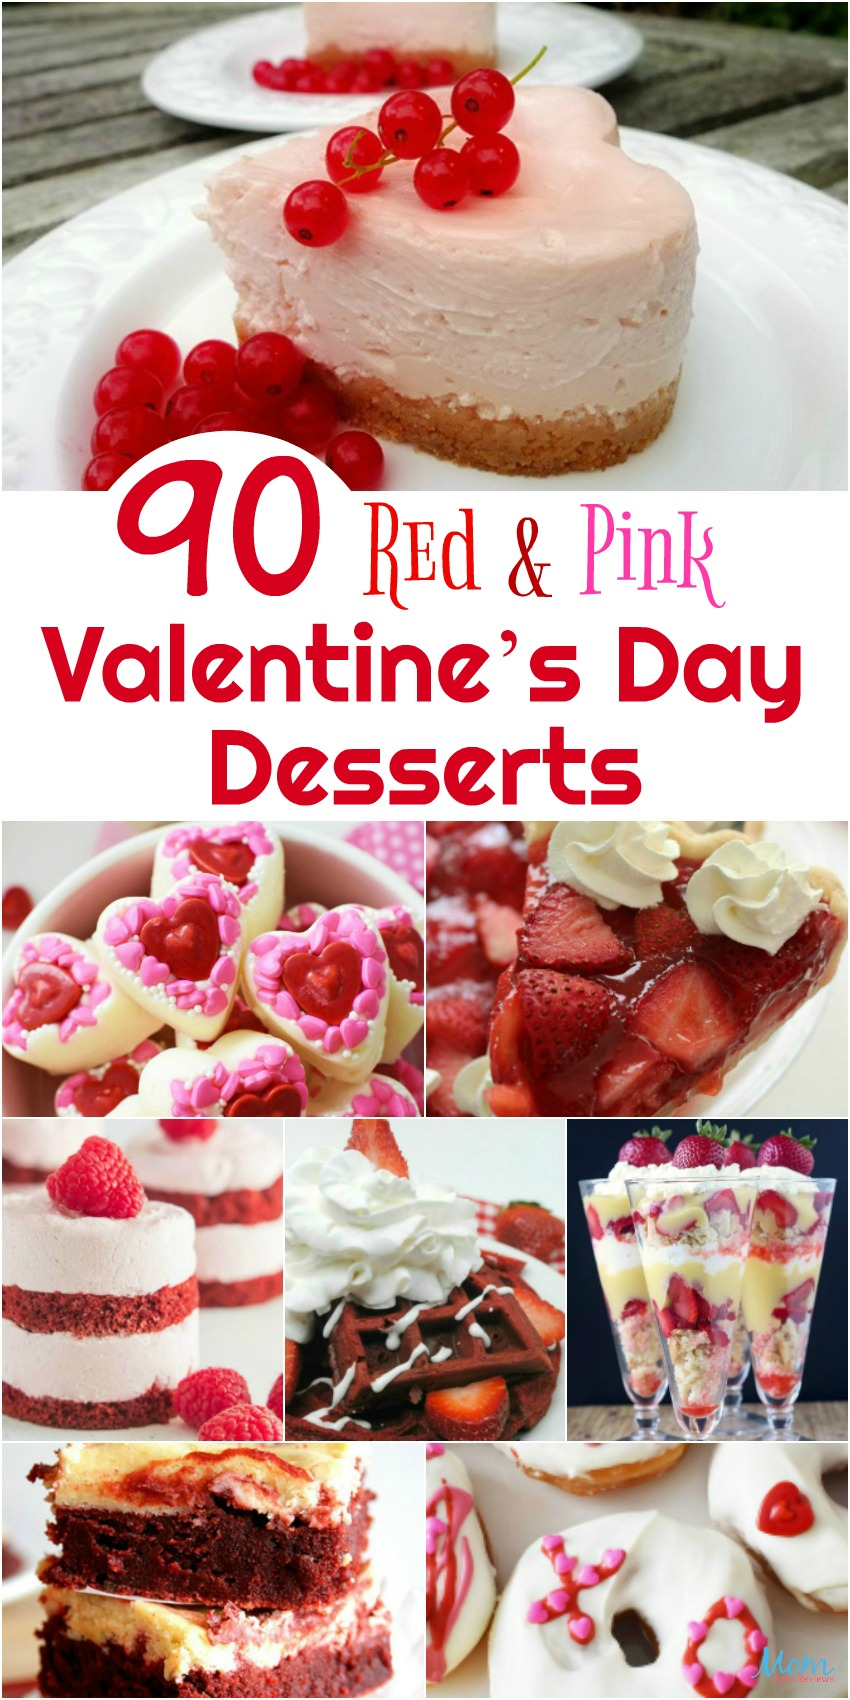 90 Red & Pink Valentine's Day Desserts to WOW Your Sweetheart! #Sweet2019 #desserts #valentinesday #yummy #cupcakes #cakes #redvelvet